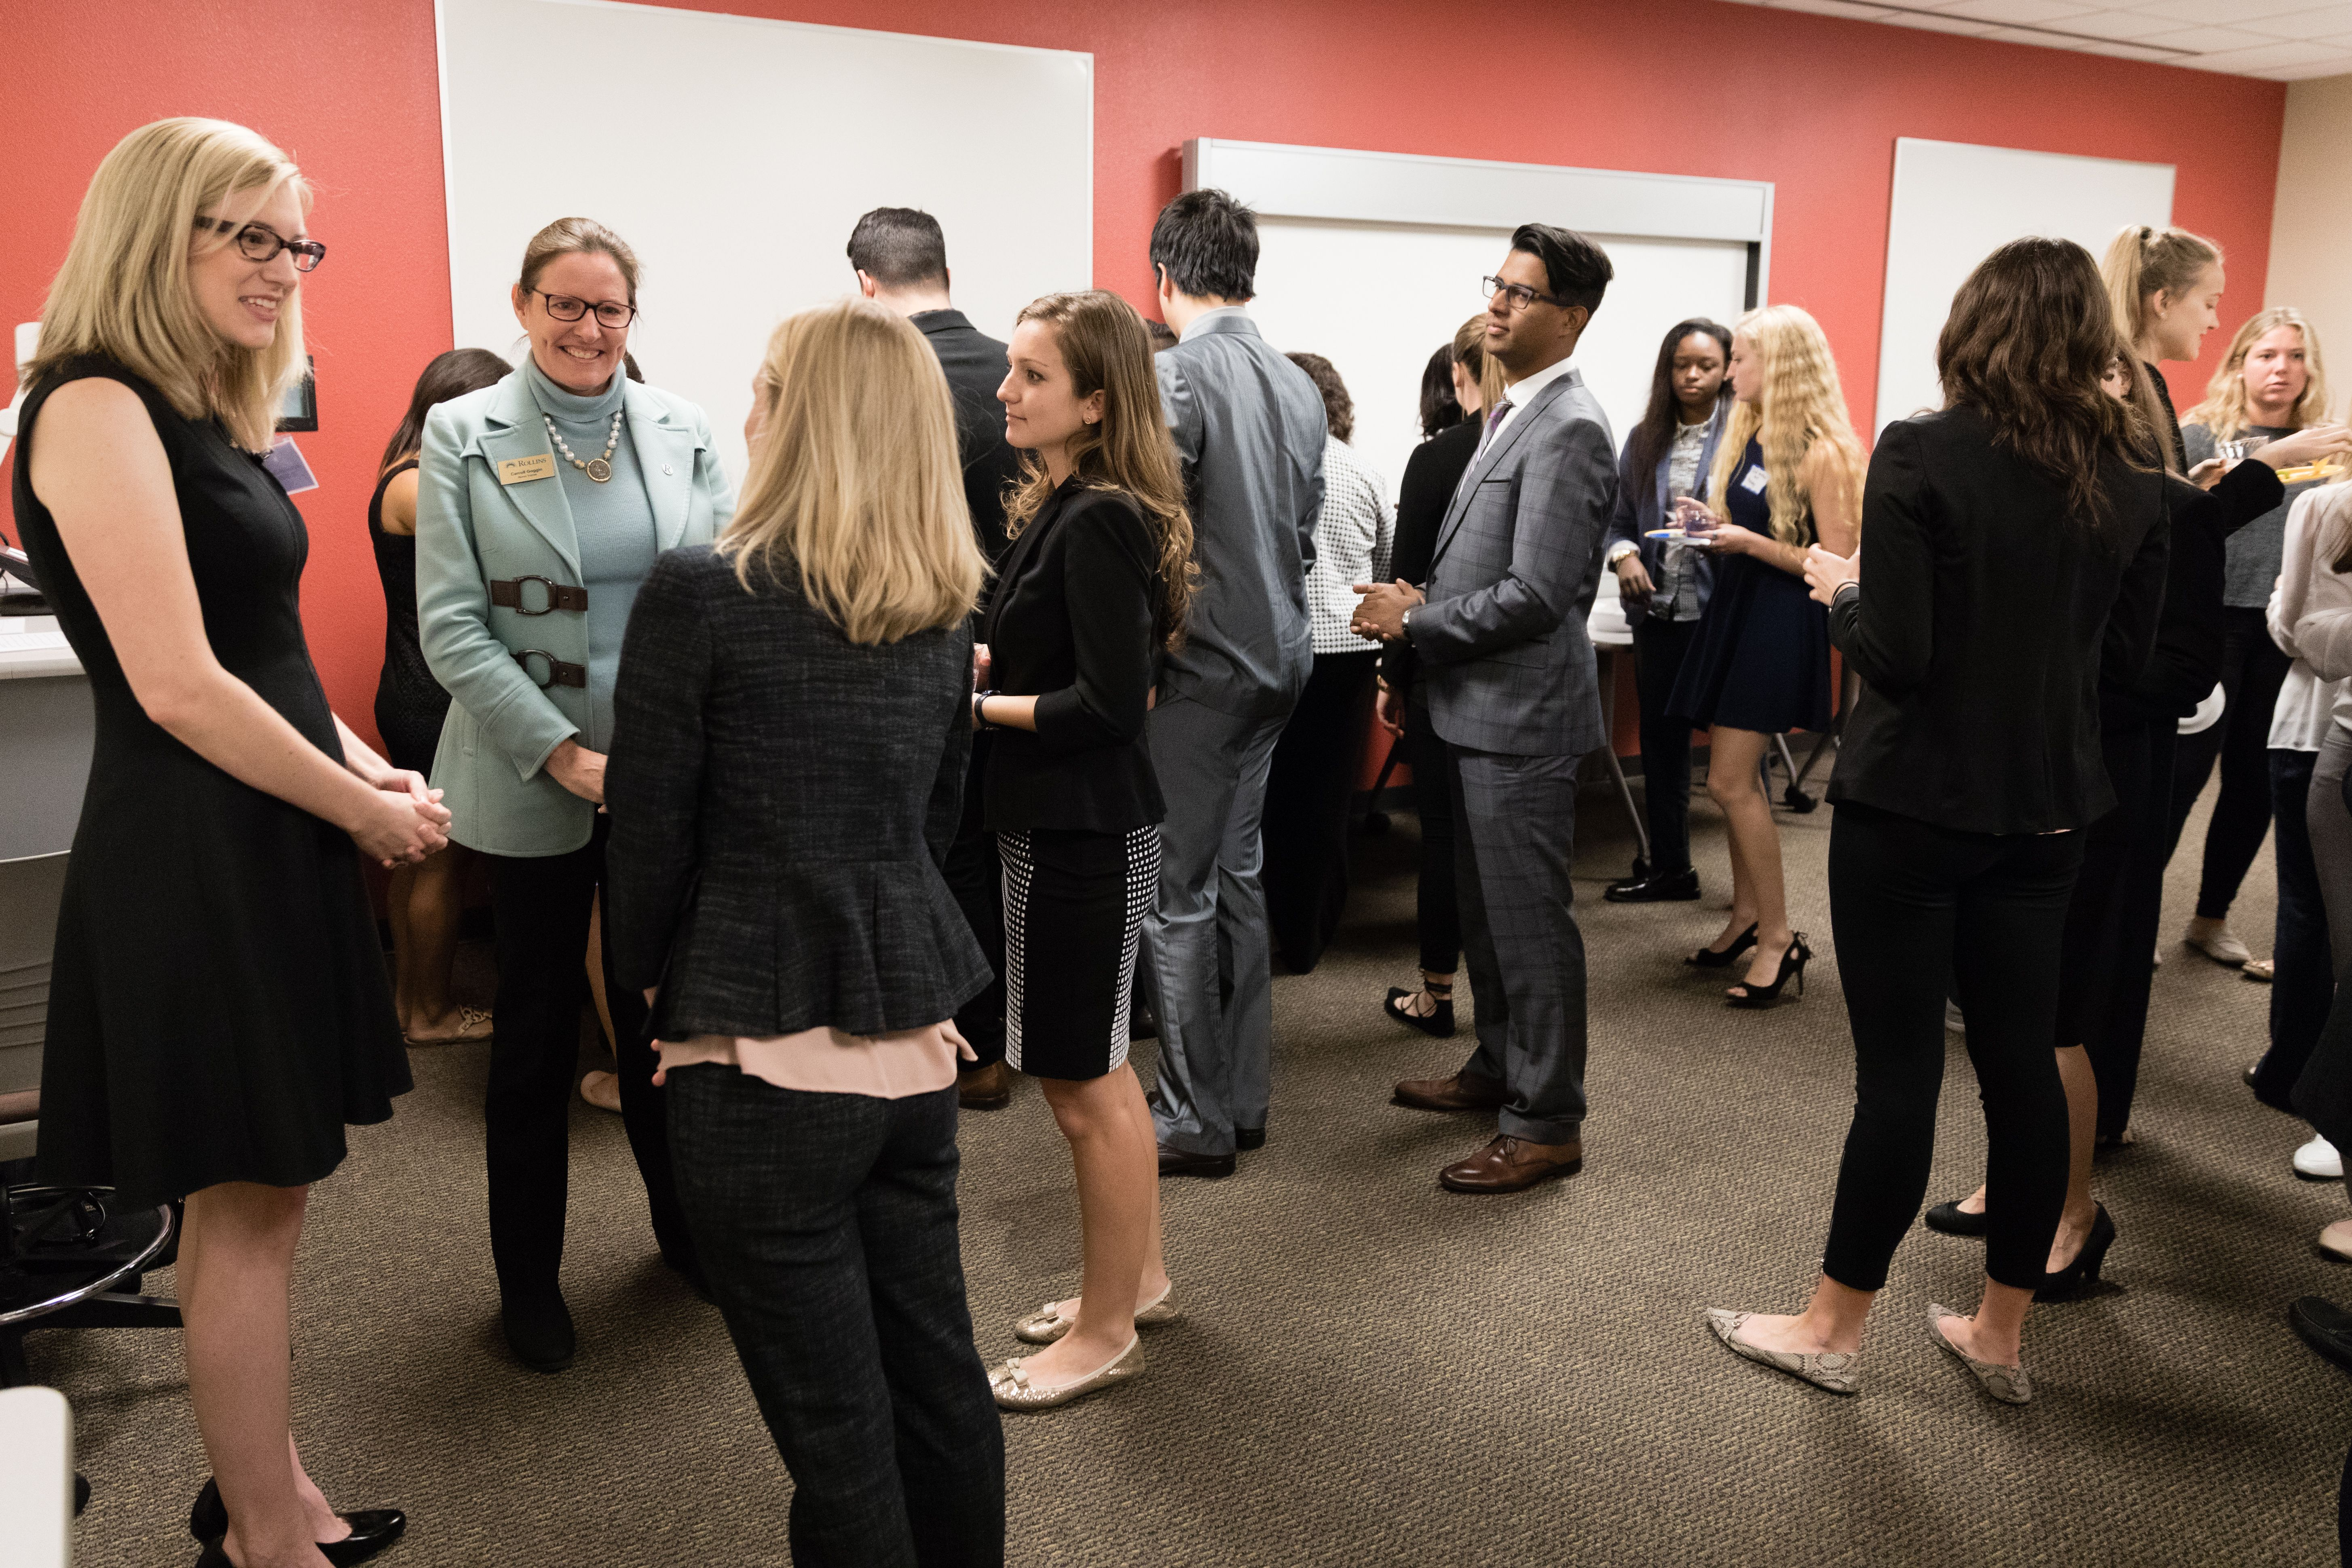 A group of sharp dressed business students networking.